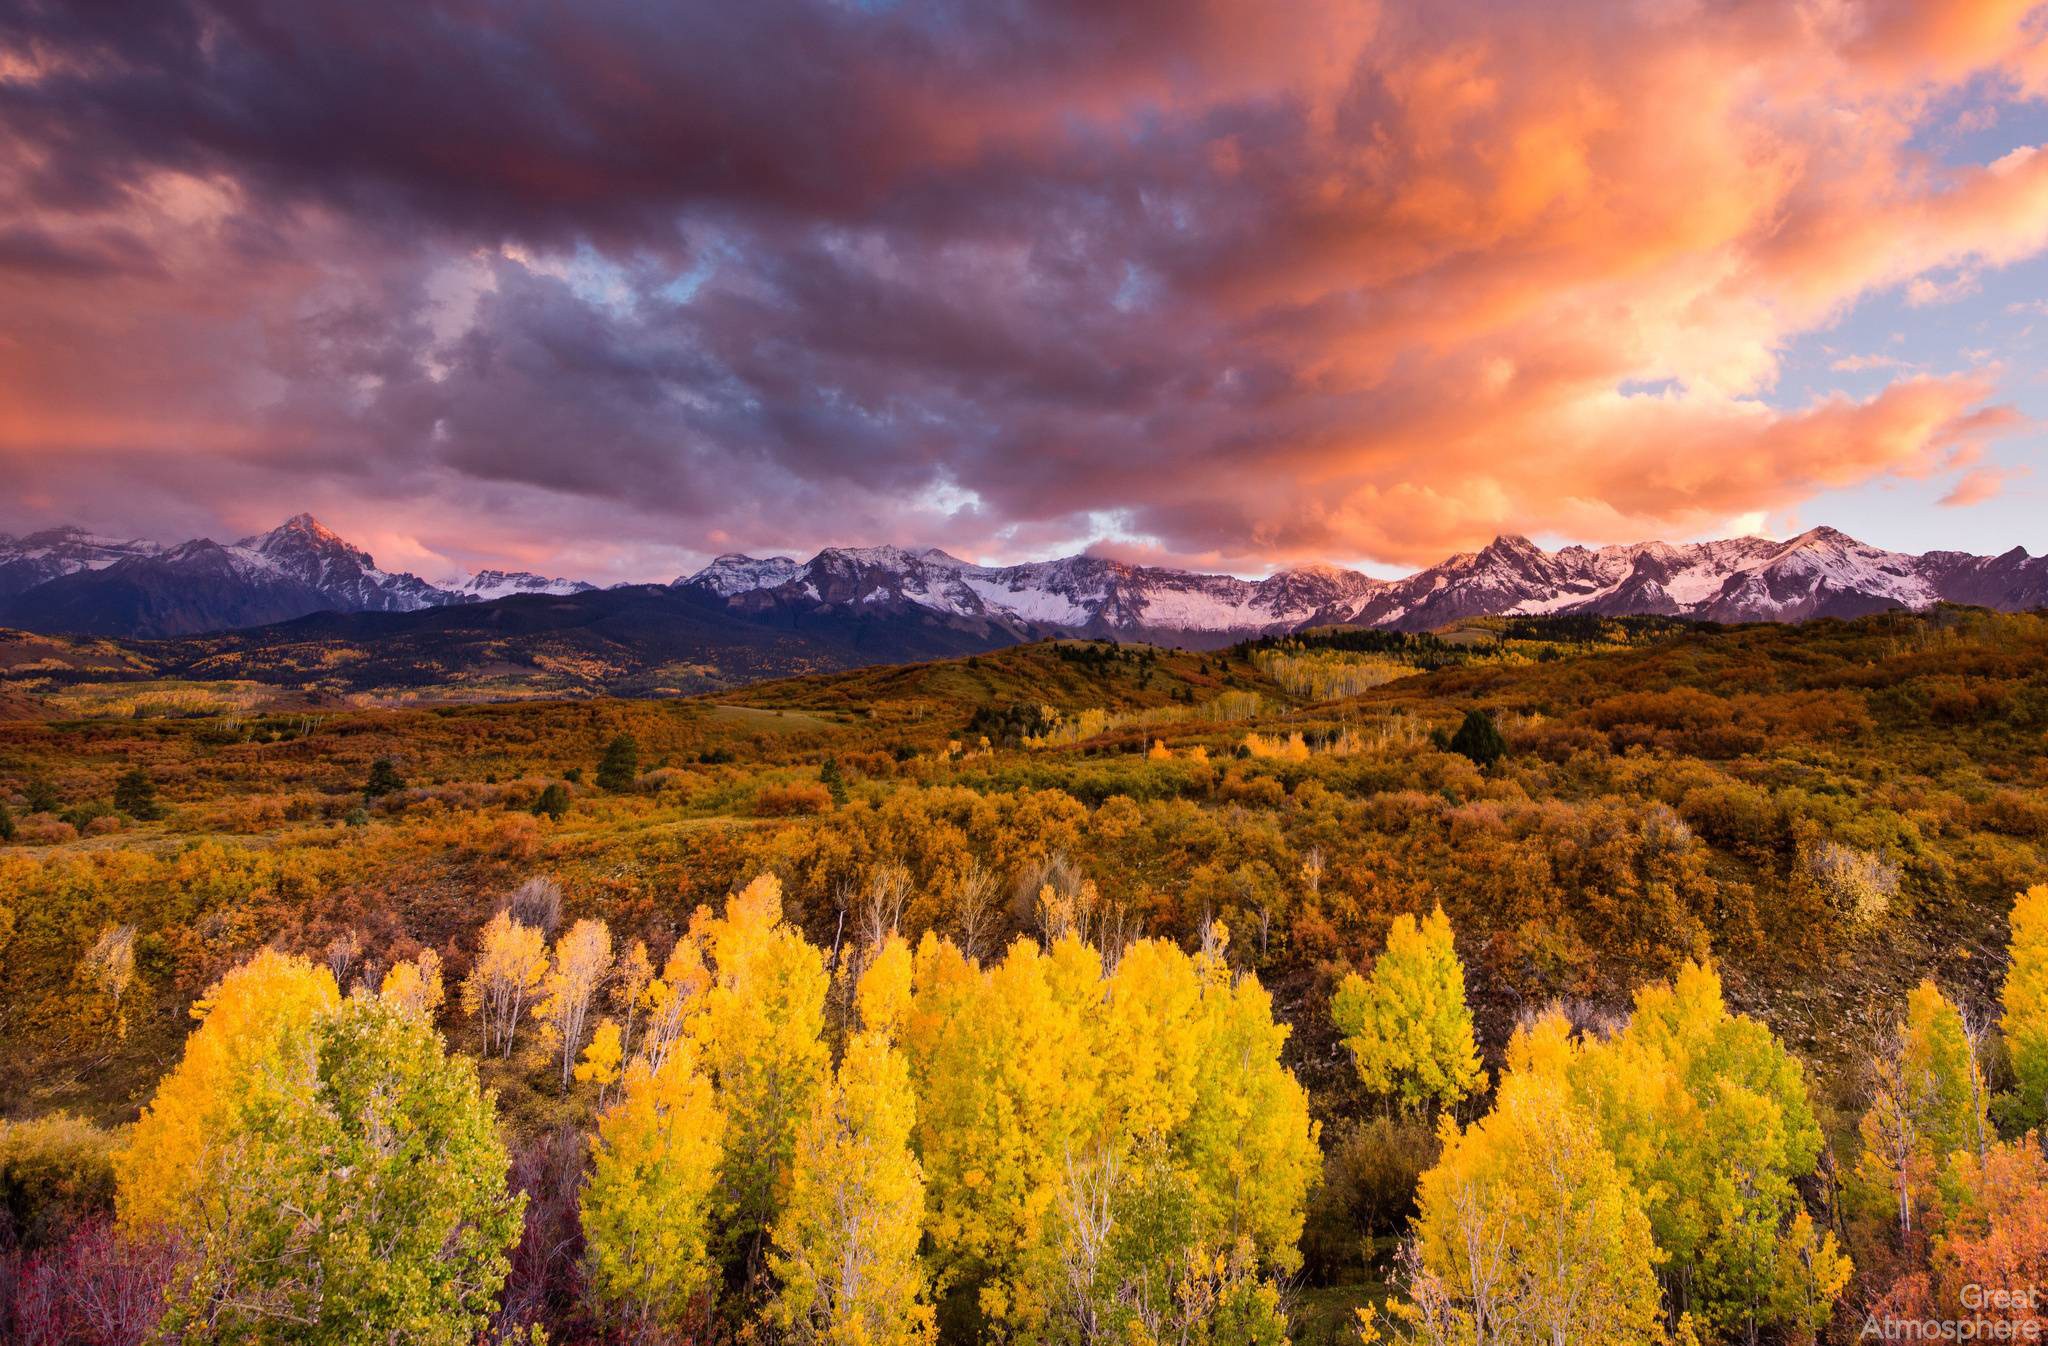 amazing-colors-beautiful-treest-sunset-sunrise-colorado-autumn-landscapes-photography-great-atmosphere-wallpapers